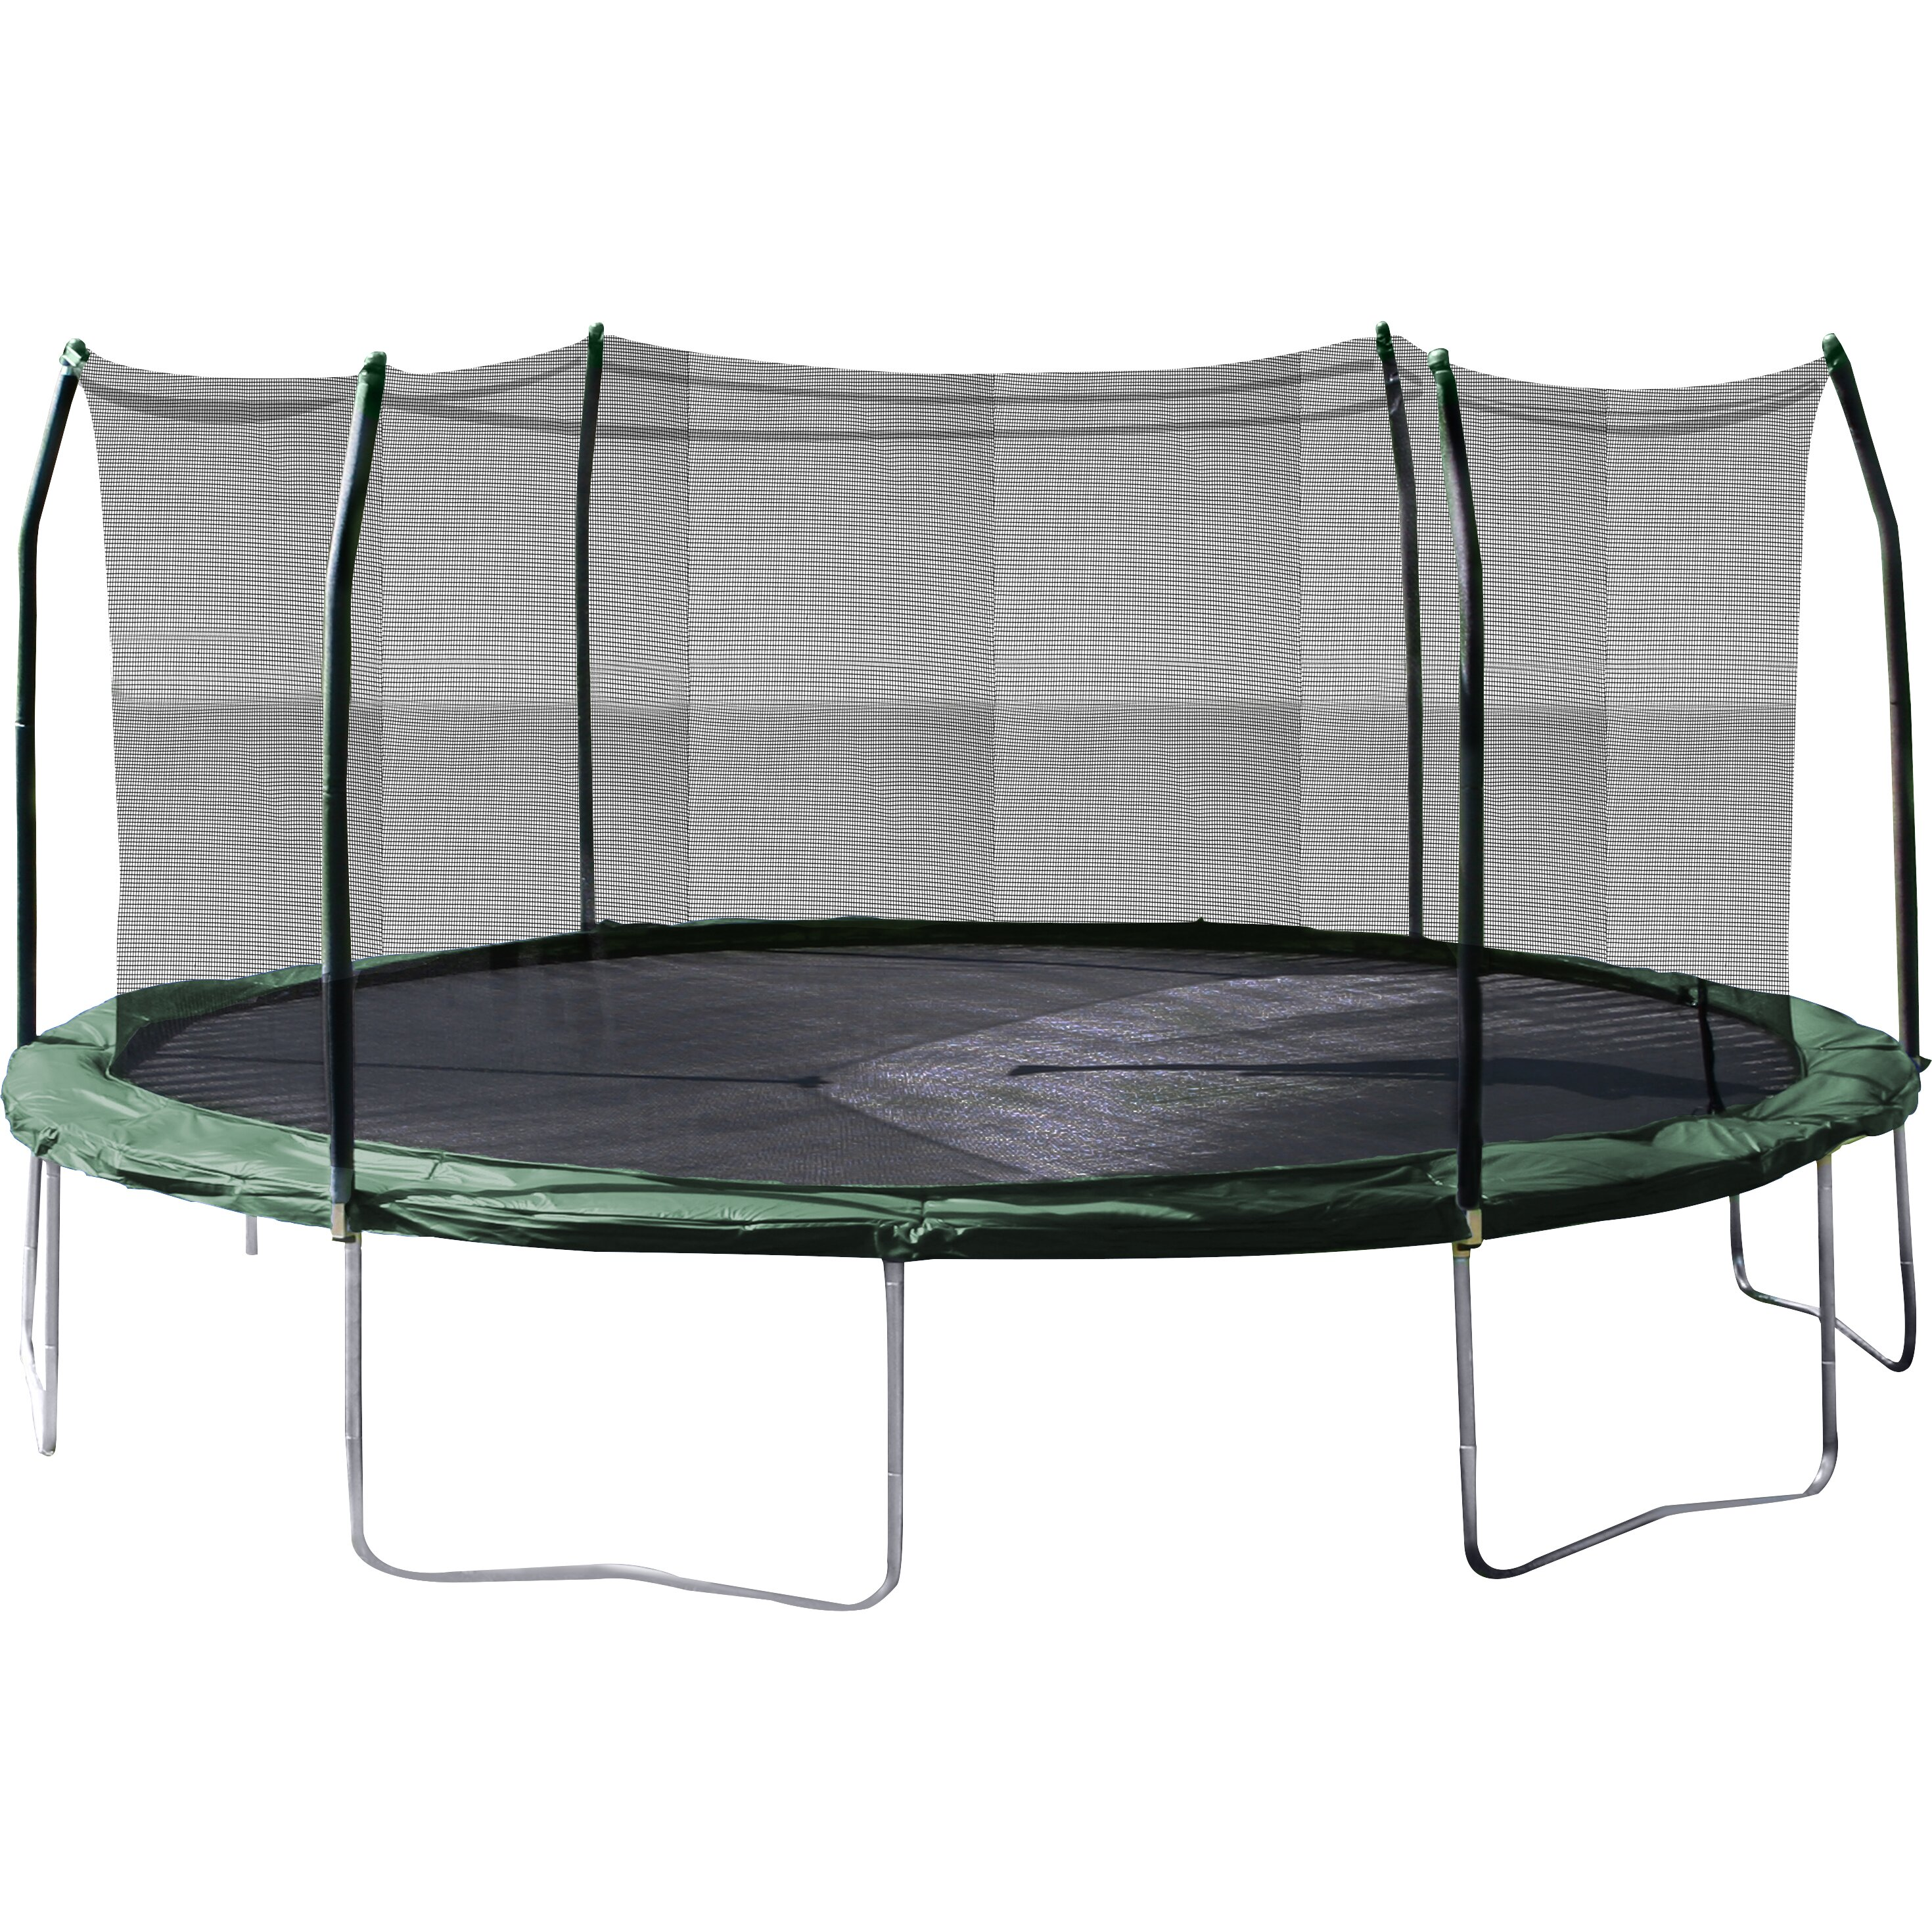 Skywalker Trampolines 15 Foot Sq Trampoline And Safety